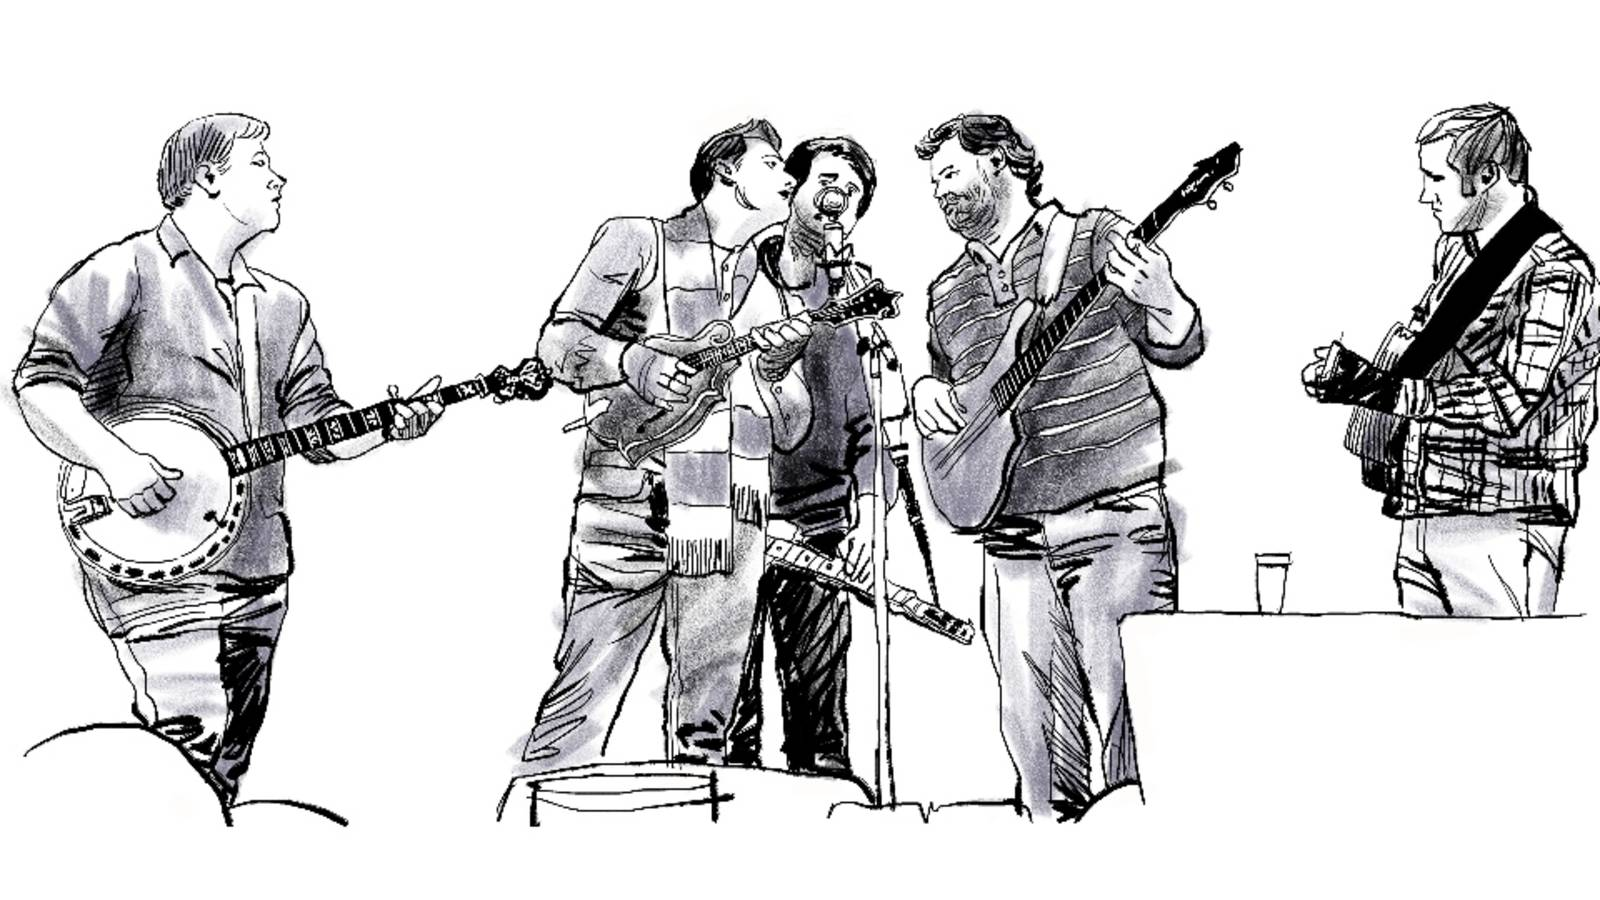 <p>Gatlinburg provides a noisy and bustling contrast to the peace and quiet of the park. But sometimes the noise is pleasant indeed. Here, the bluegrass band Monroeville plays an outdoor concert.</p>